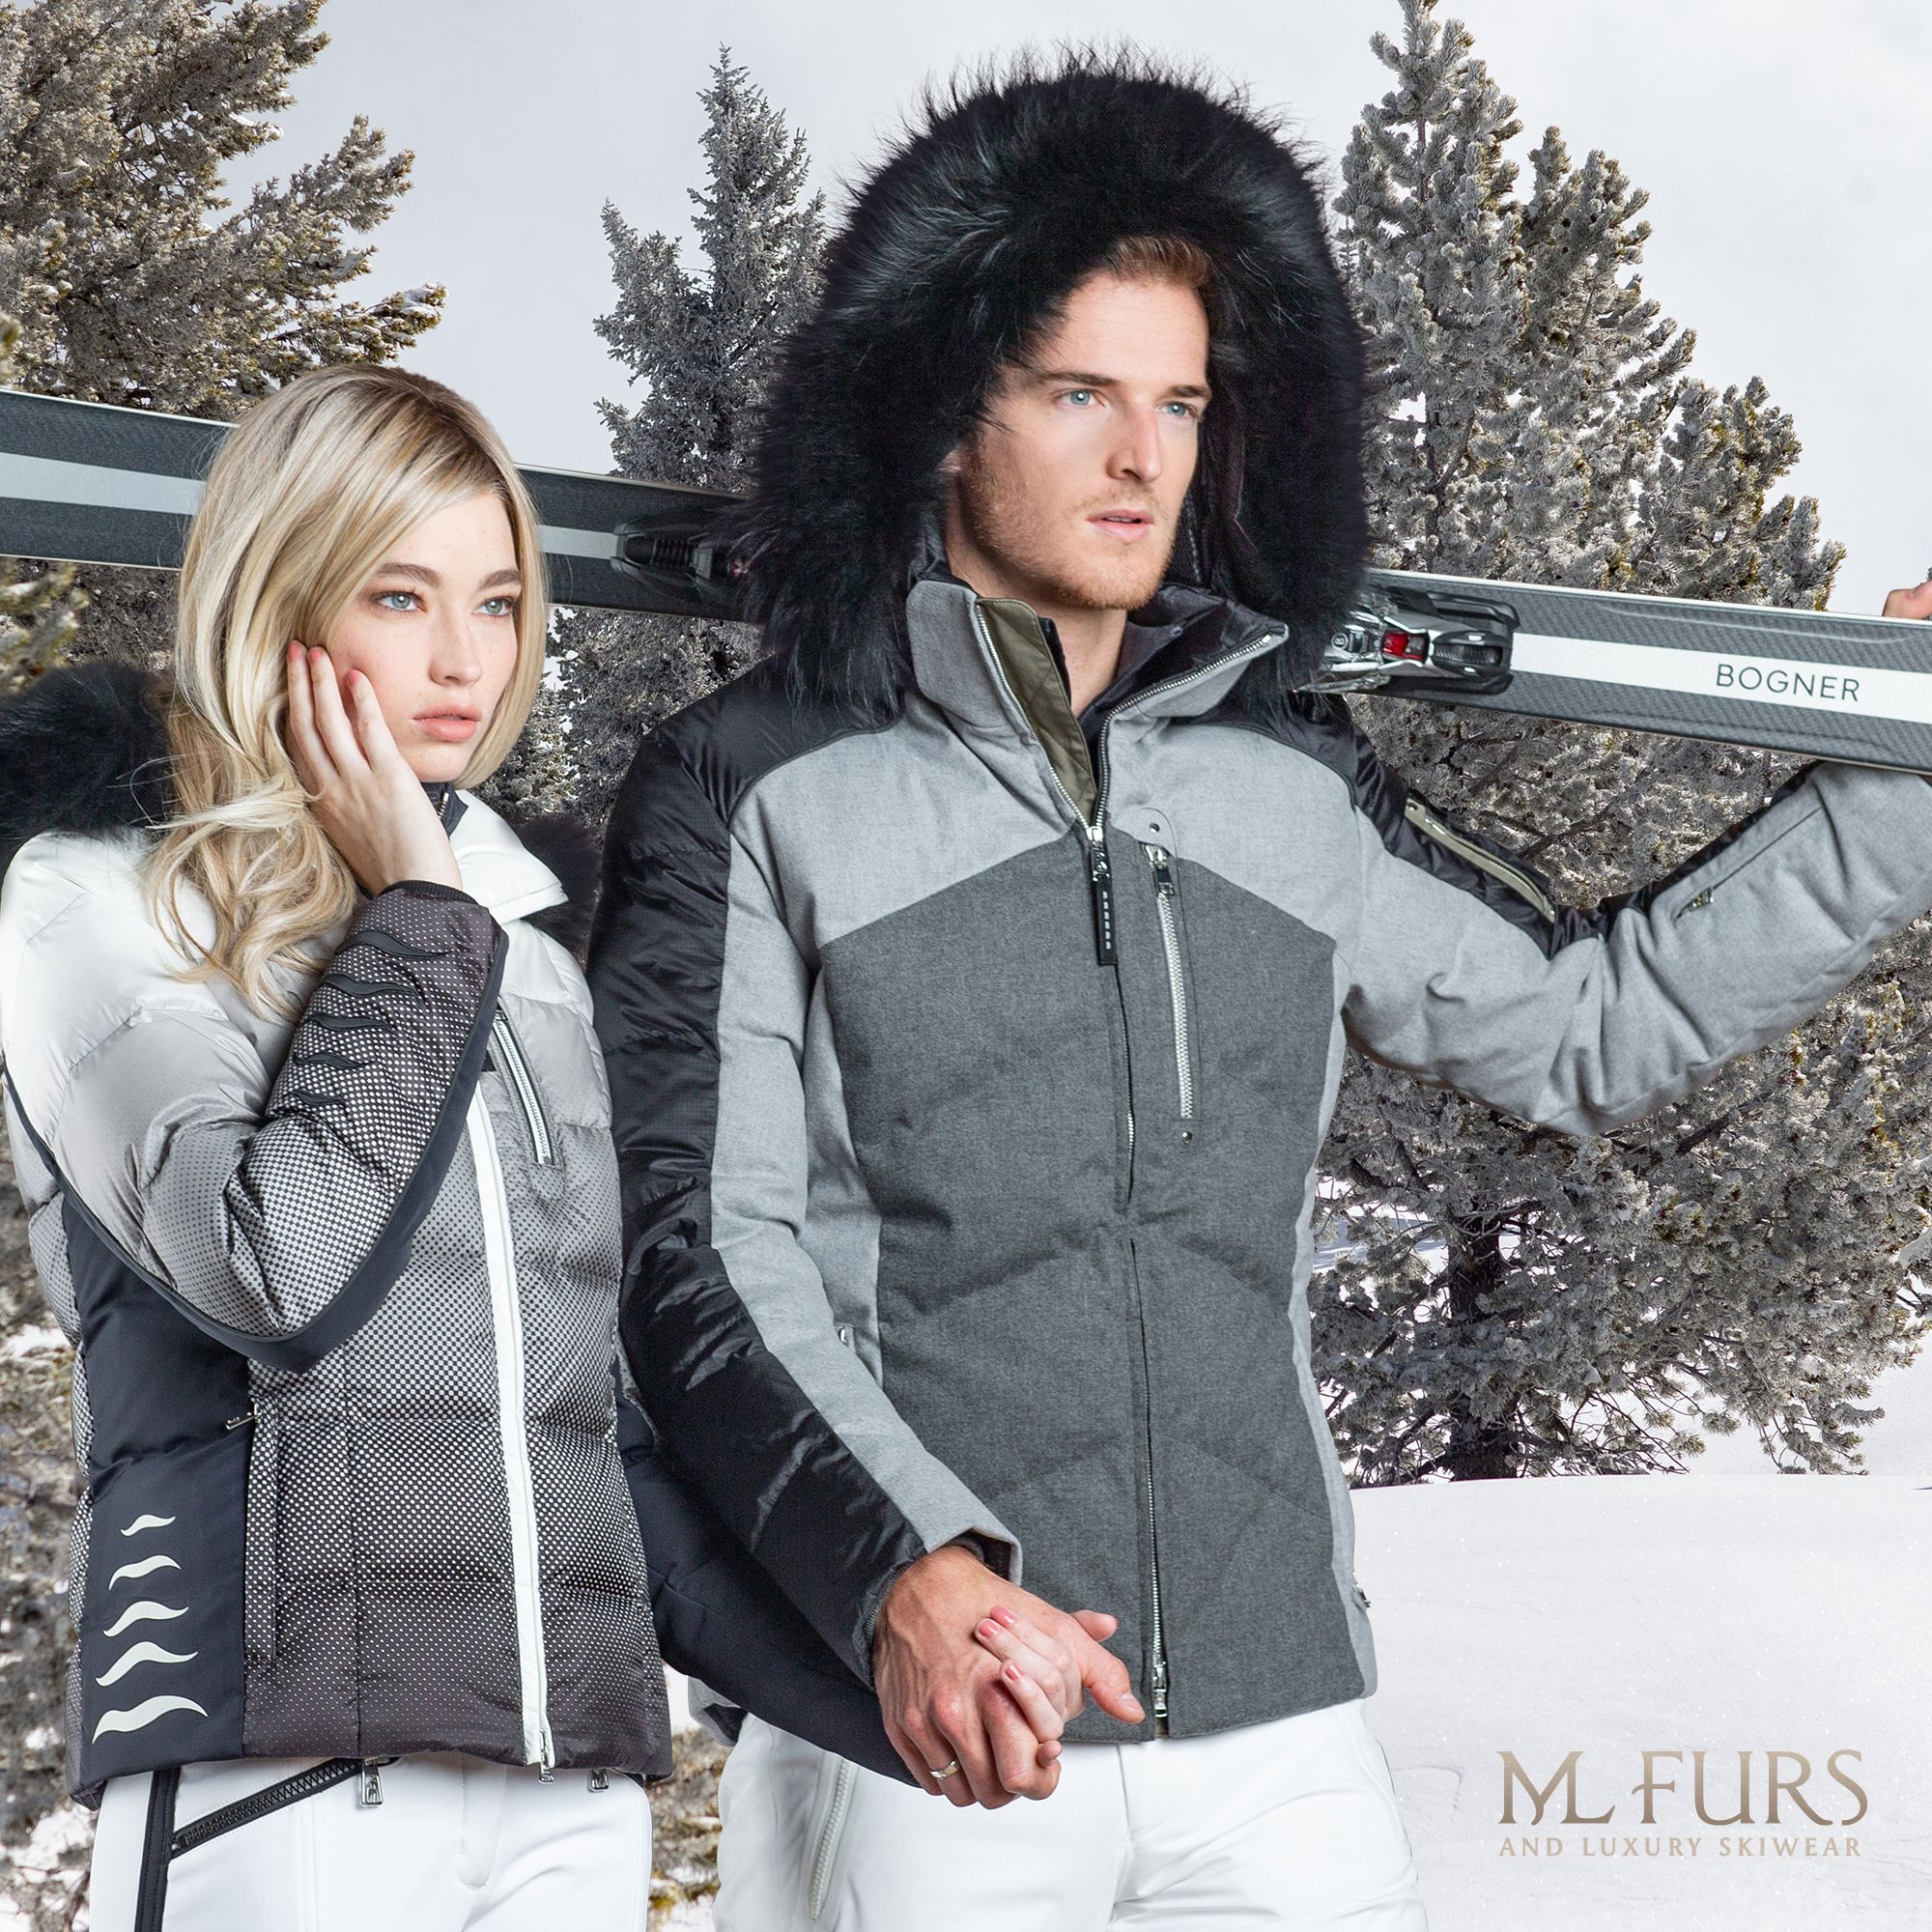 Pin on Luxury Ski Wear